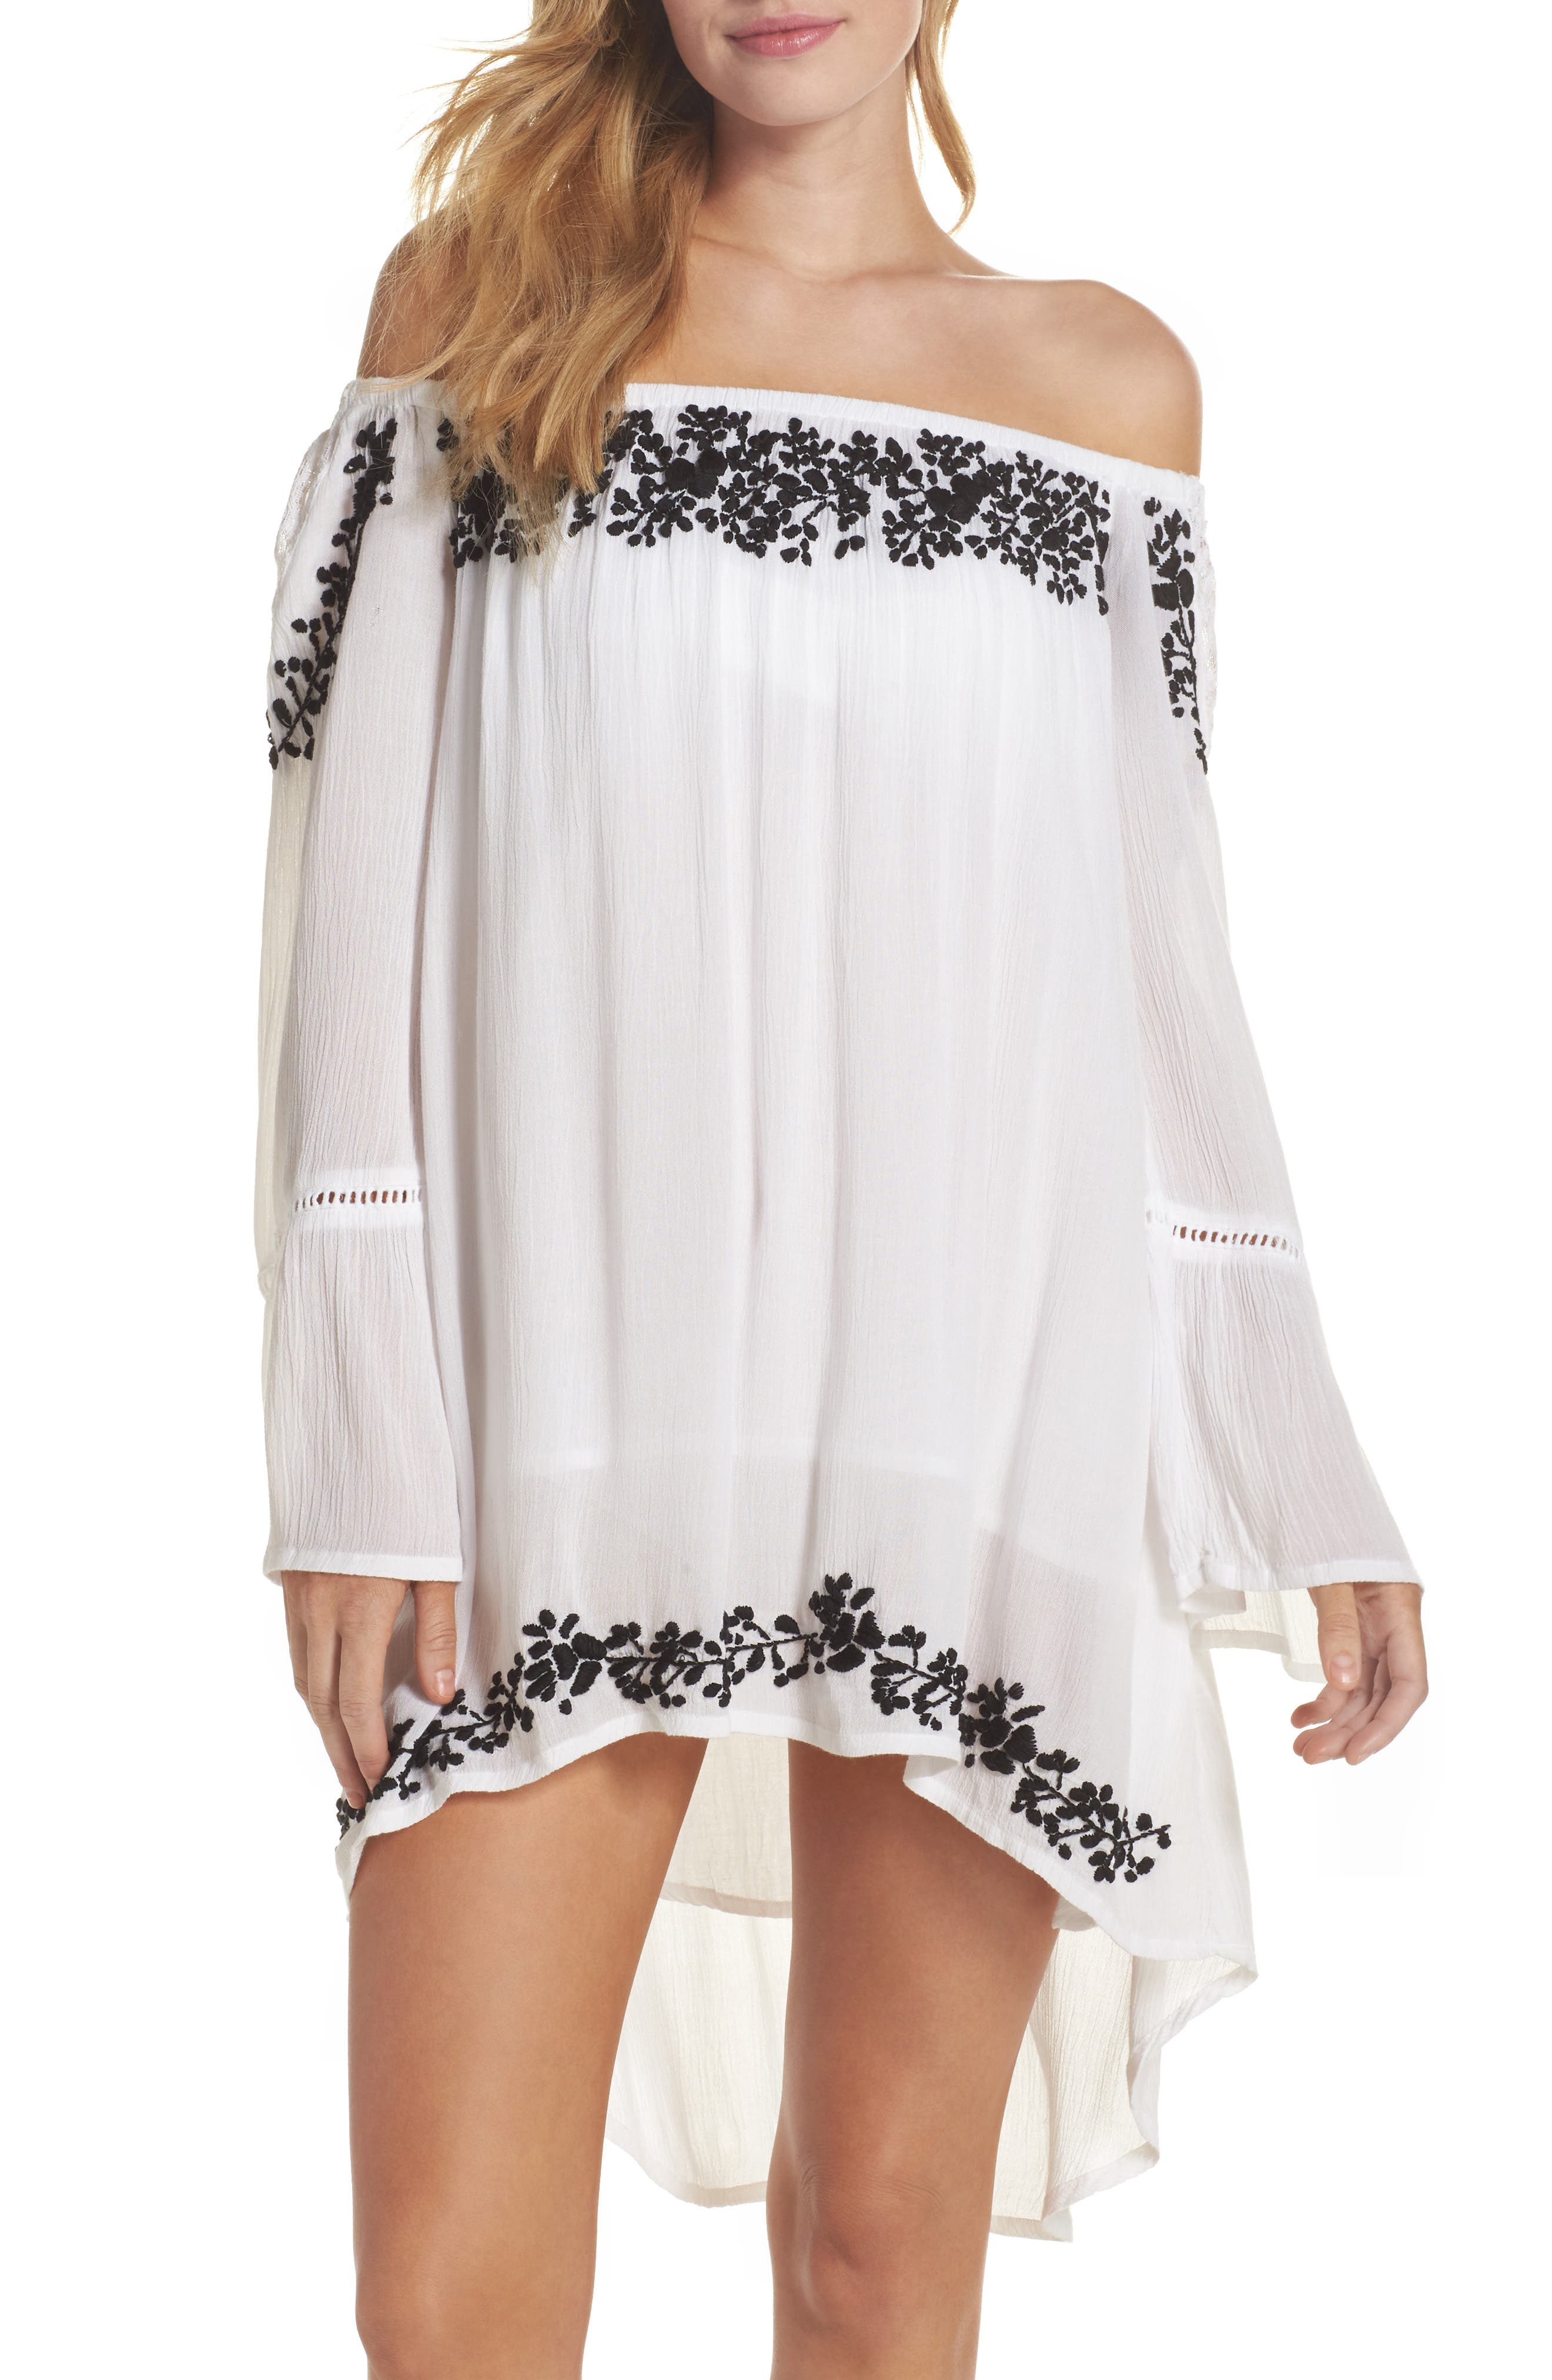 Cleopatra Off the Shoulder Cover-Up Dress,                         Main,                         color, White